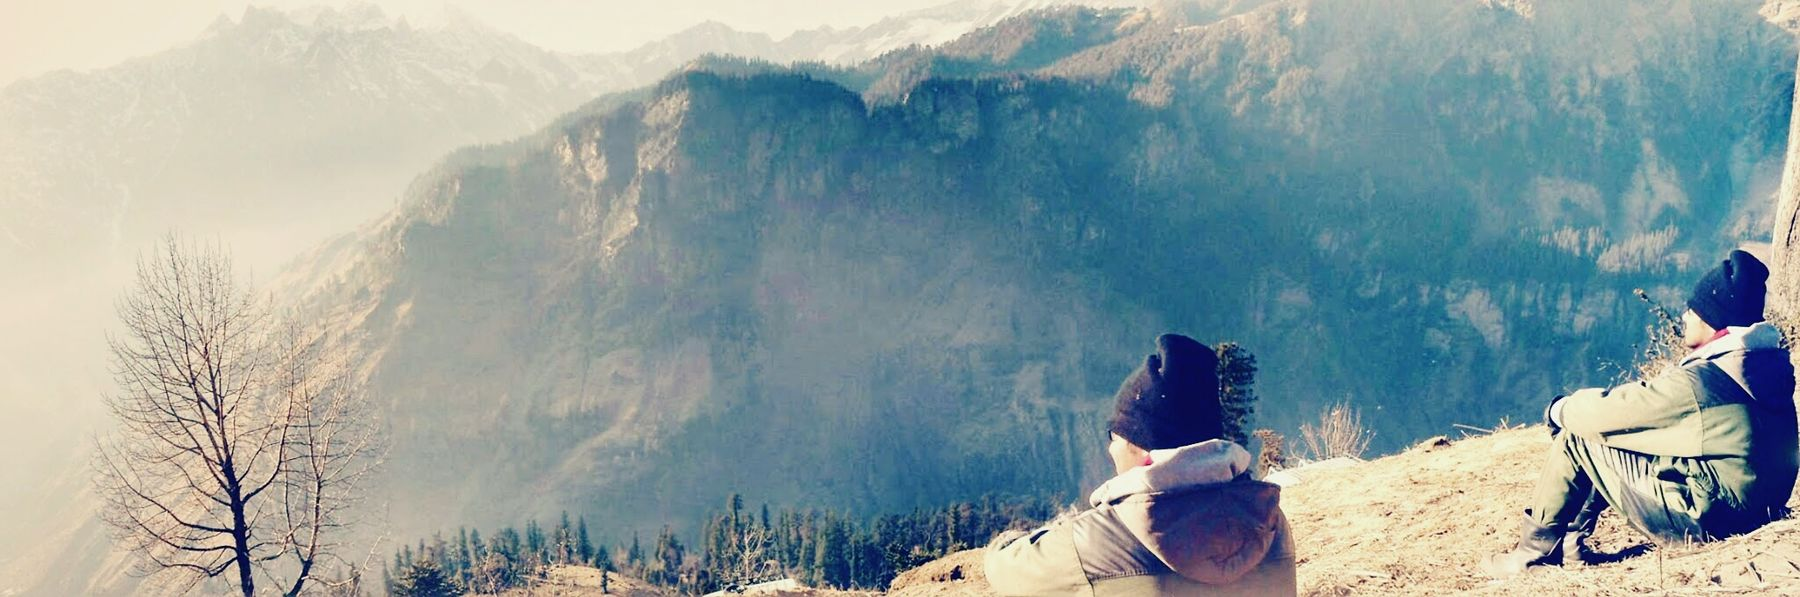 Capture The Moment Manali Trance loSt iN tHe bEaUtY oF THE GREAT HIMALAYAS Himalayas 😚